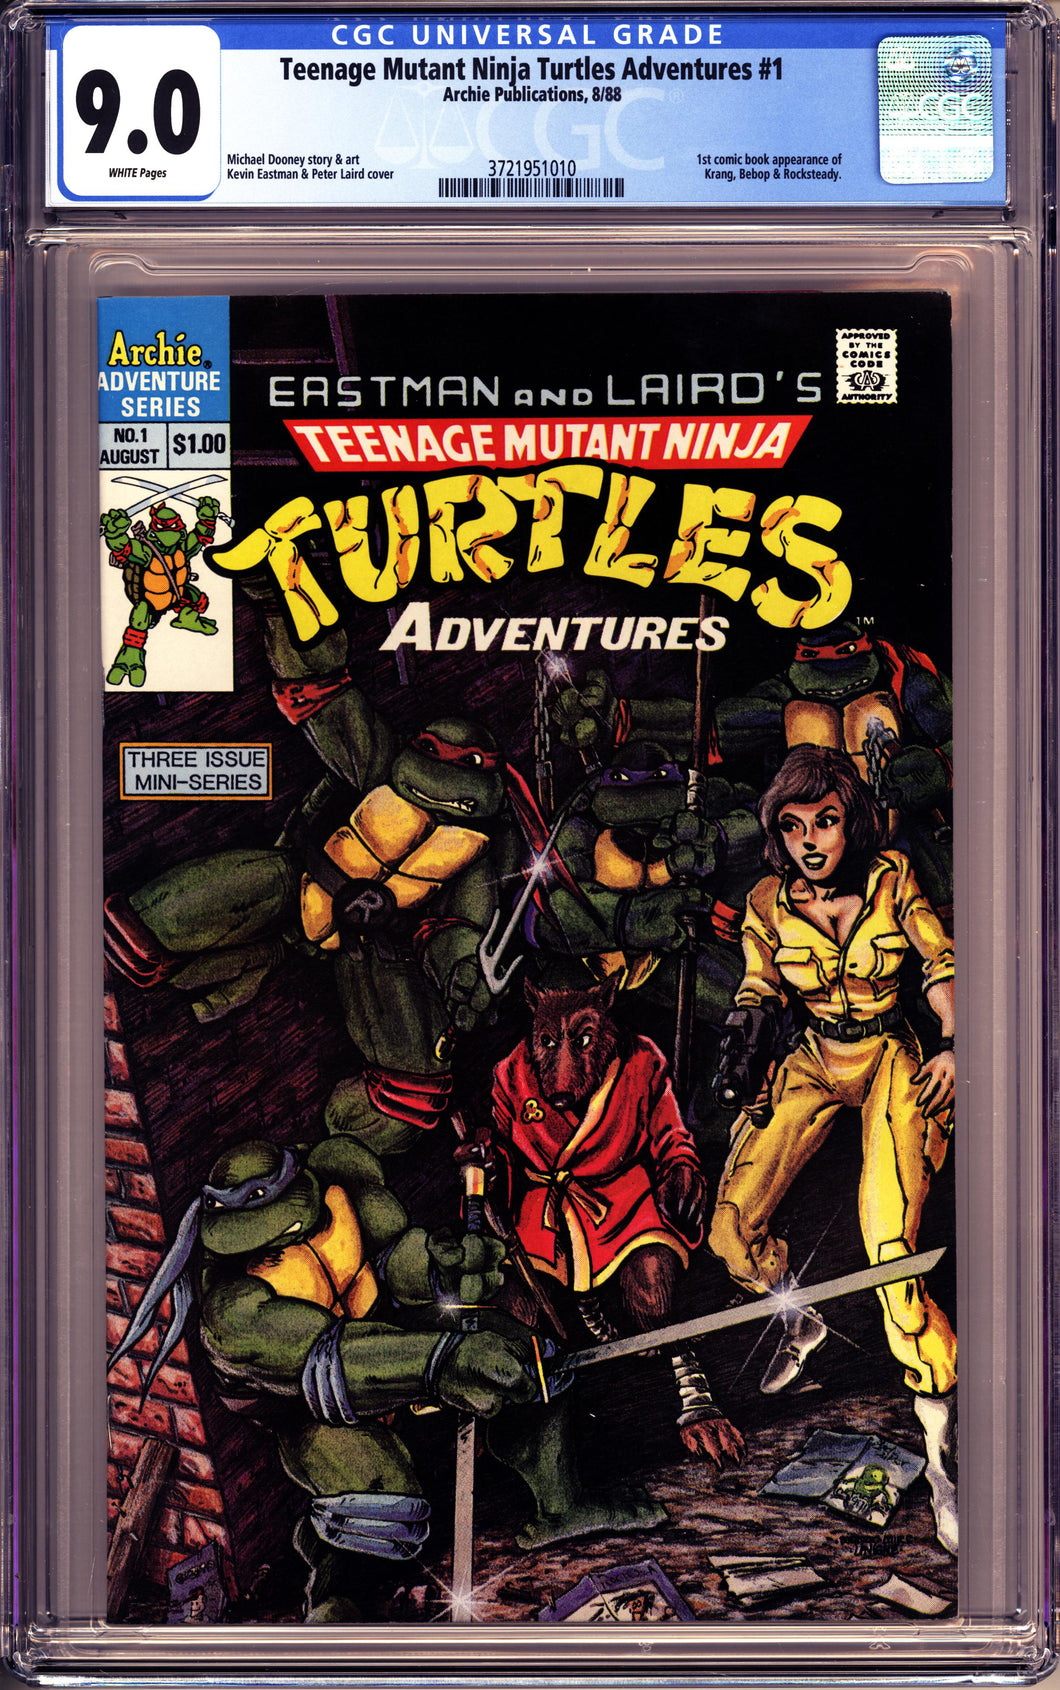 TMNT ADVENTURES #1 (1988 Archie Publications) CGC 9.0 VF/NM EASTMAN LAIRD